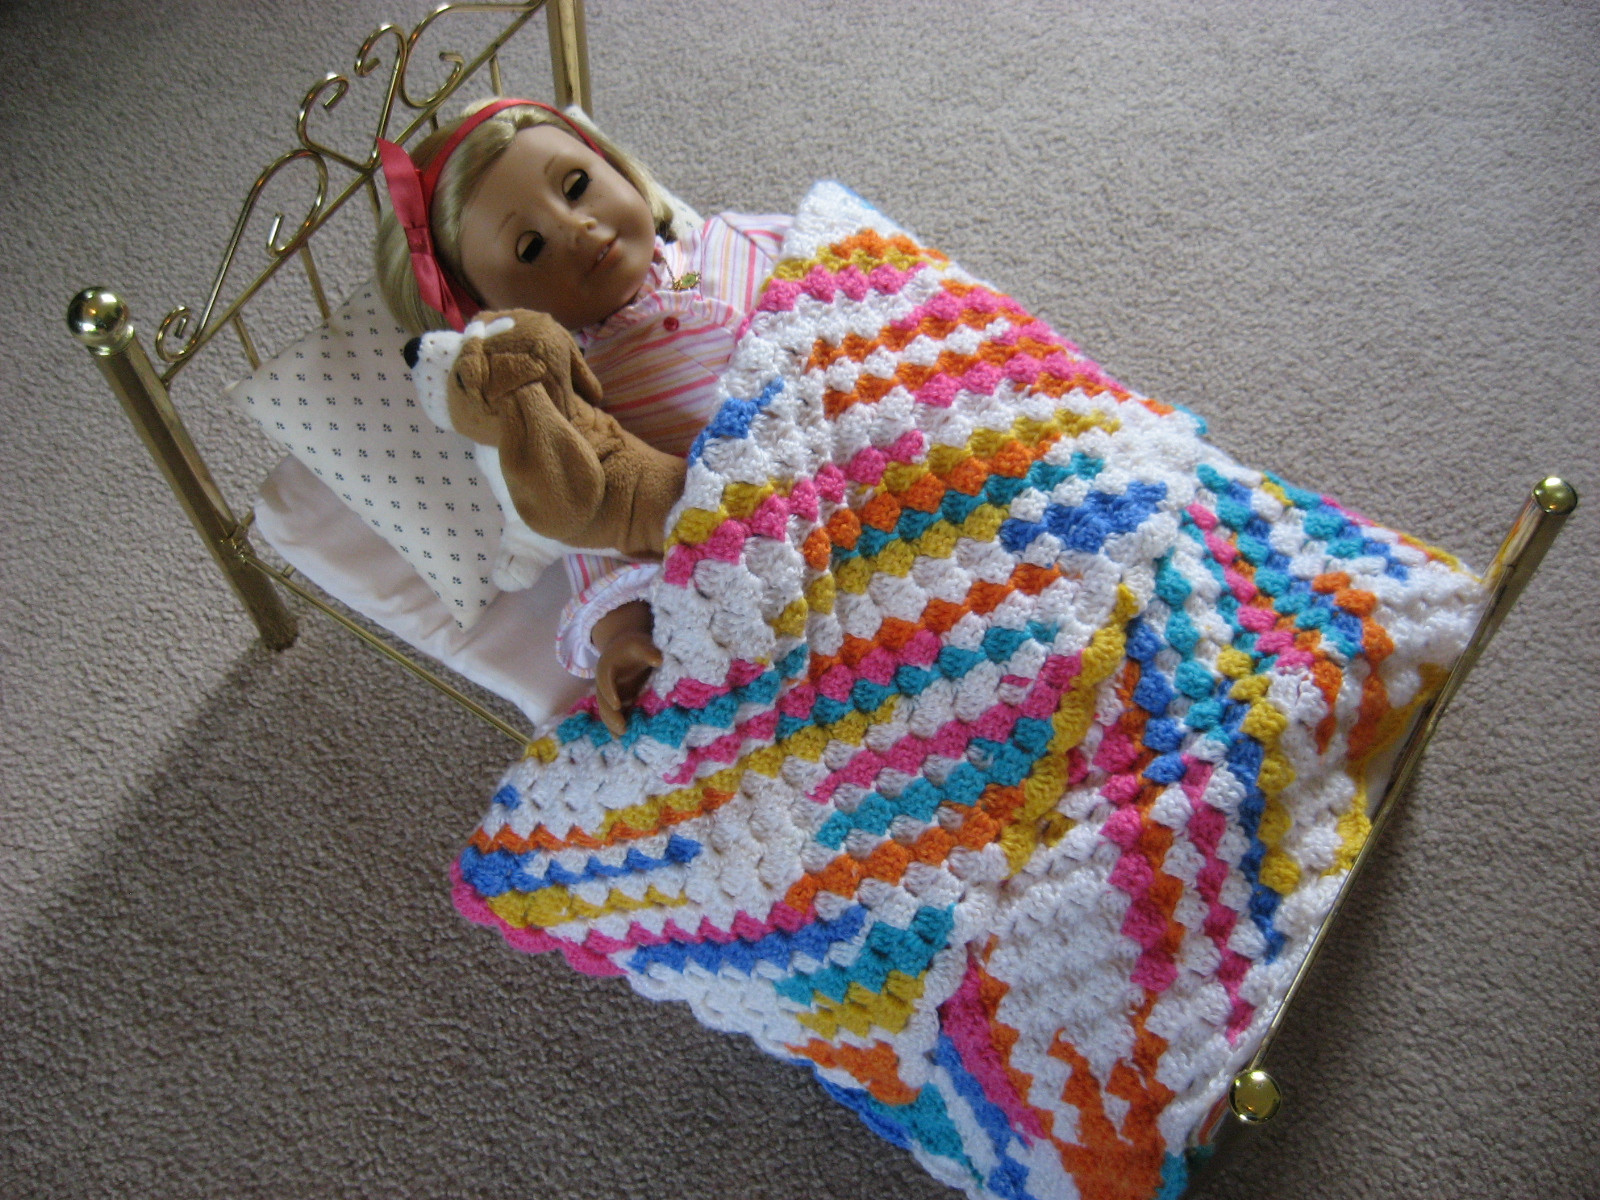 Best Of Hooked On Needles More Summertime Crocheting A Colorful Baby Doll Blankets Of Adorable 37 Images Baby Doll Blankets